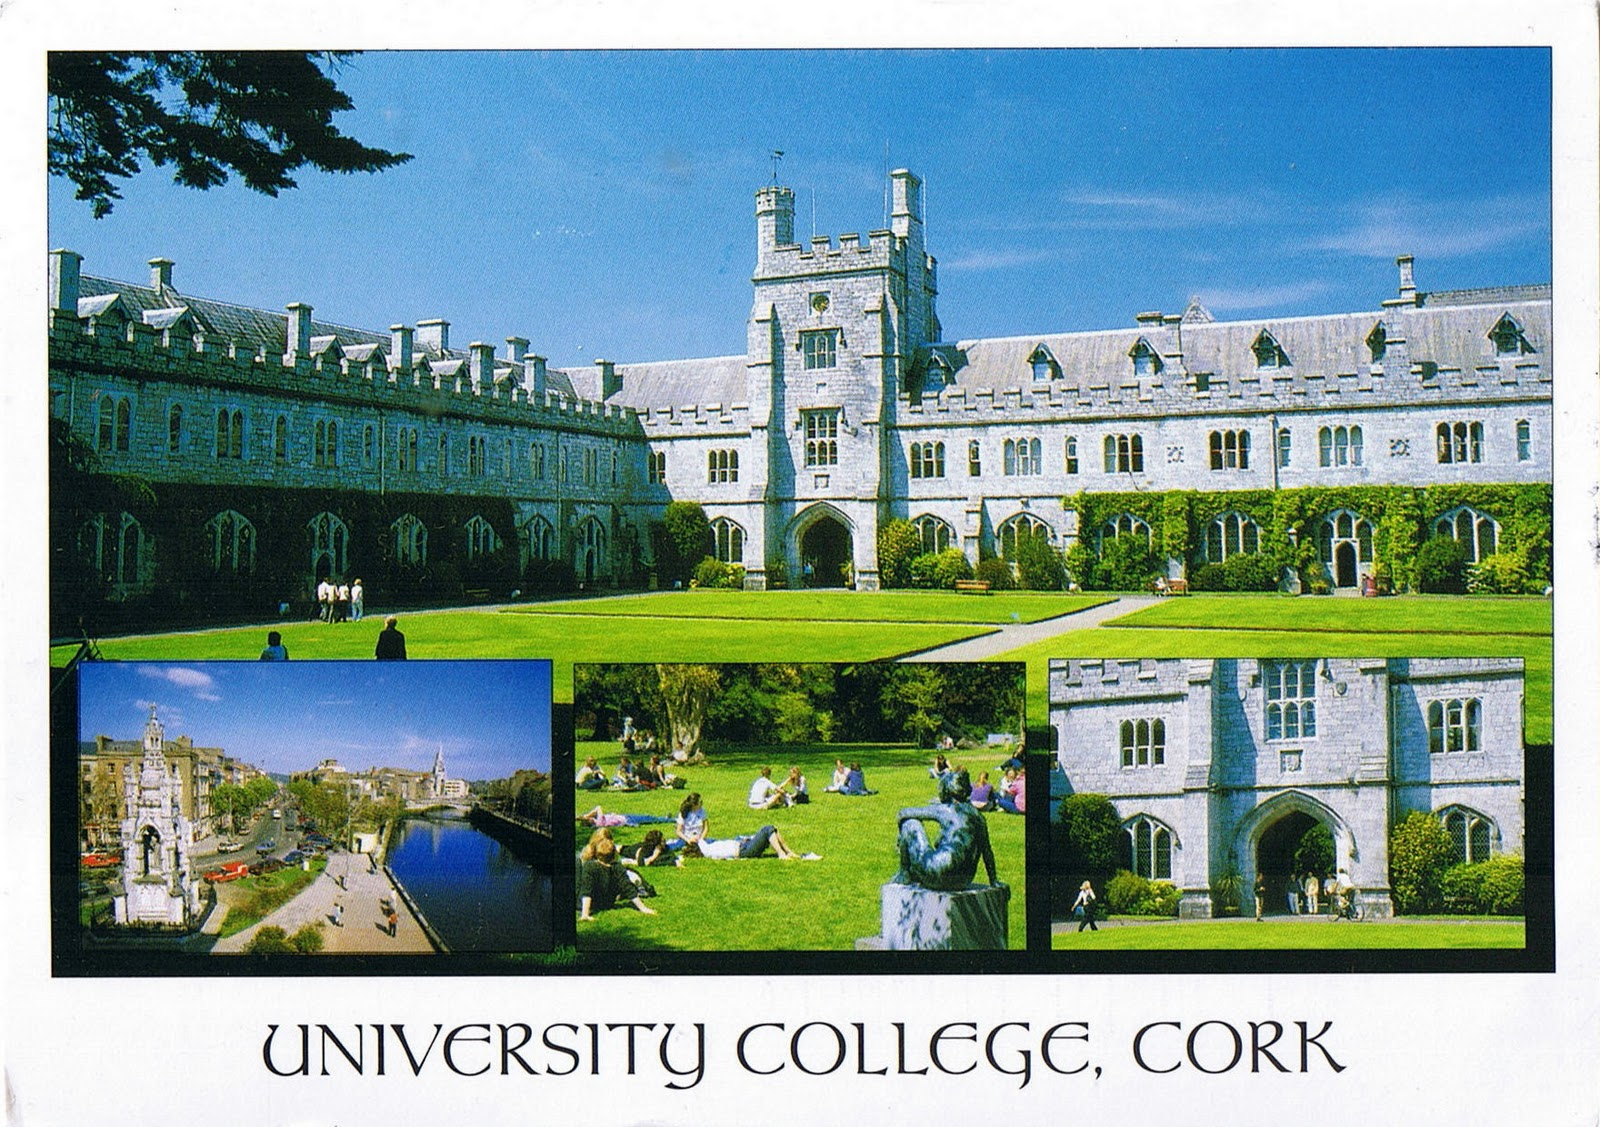 National university of ireland the university is located in cork